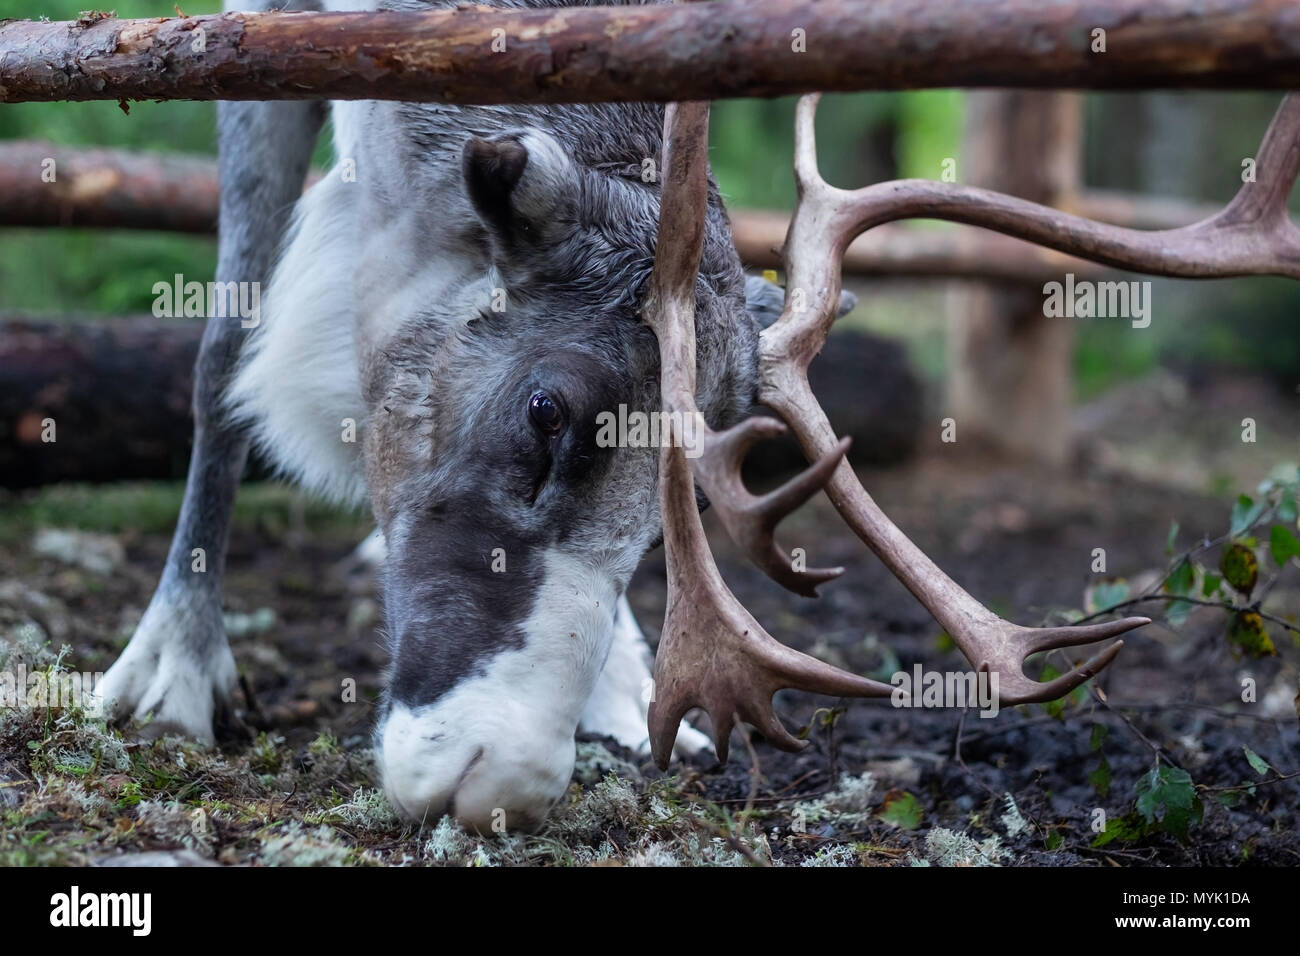 A reindeer eats a bowl in a pen. - Stock Image